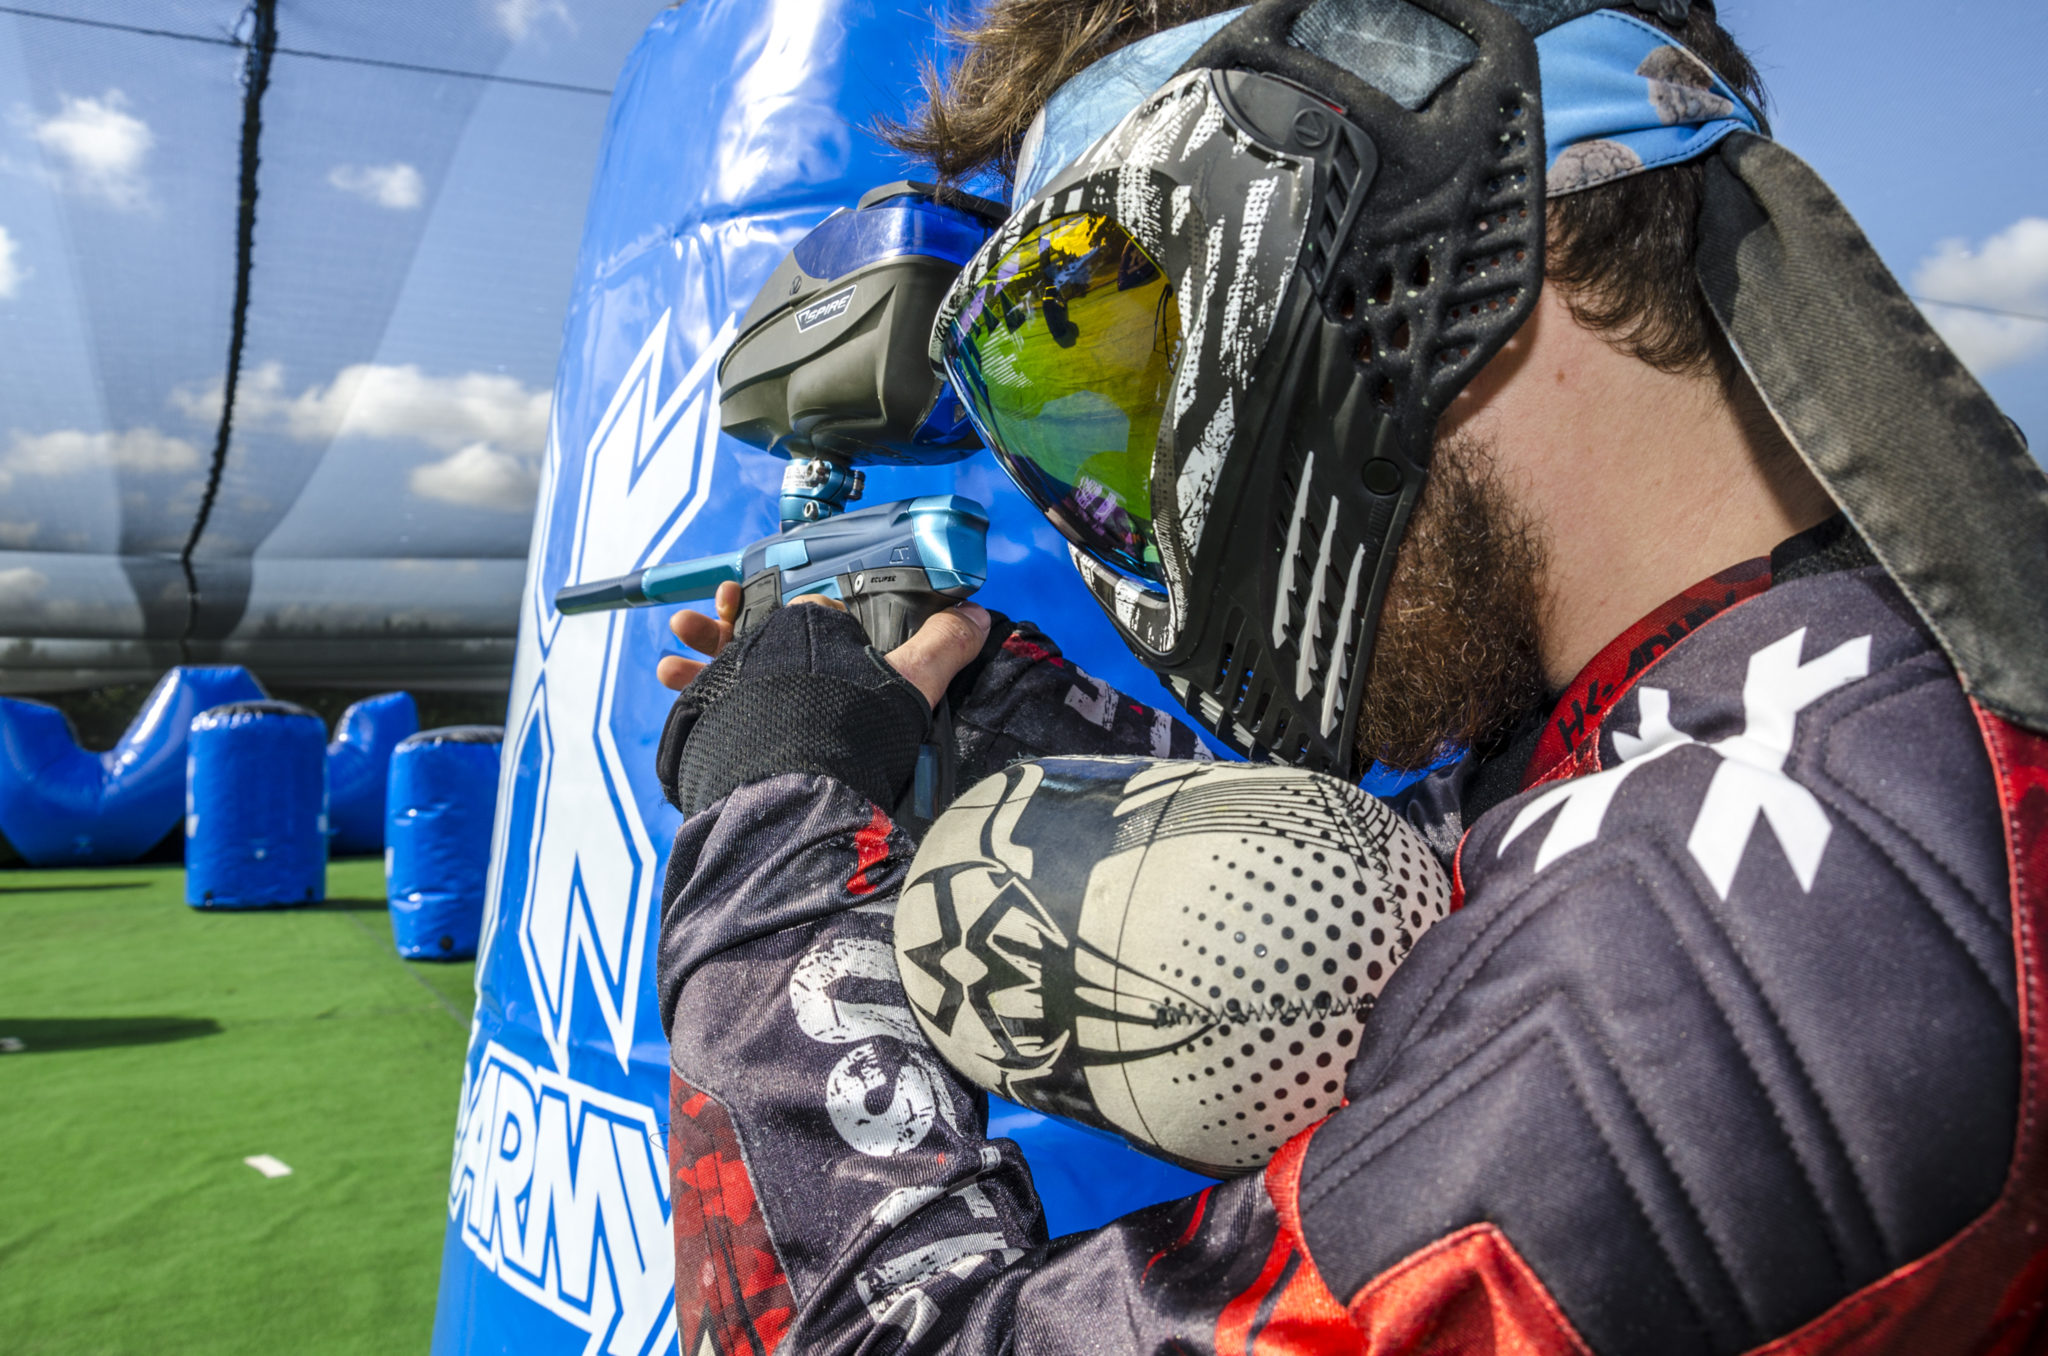 Competition Paintball